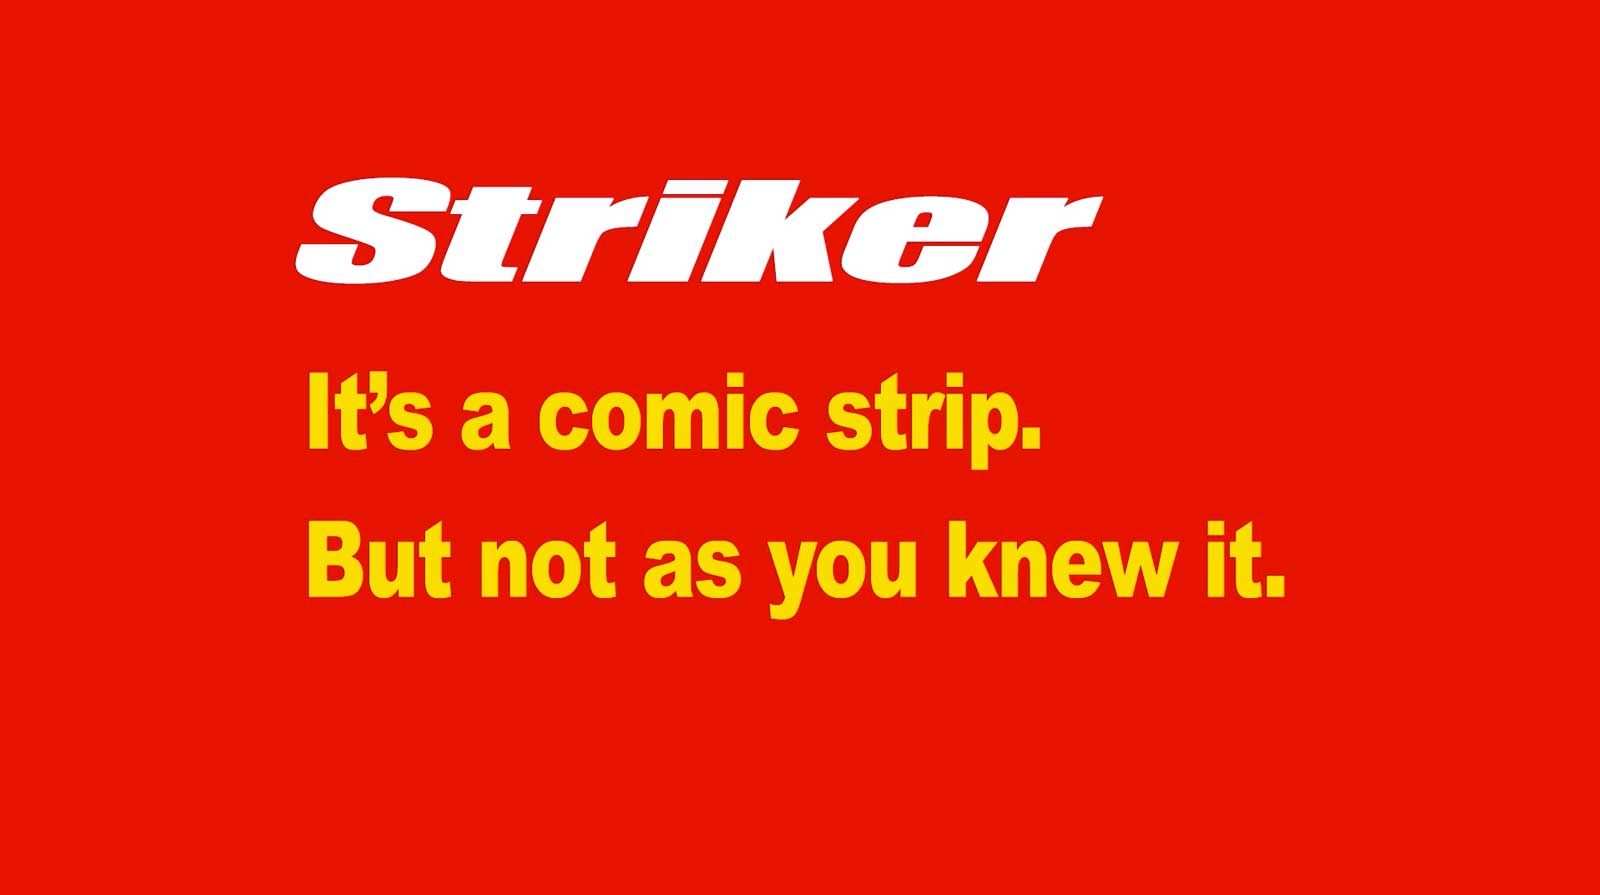 Striker Pomo 2016 - Not As You Know It